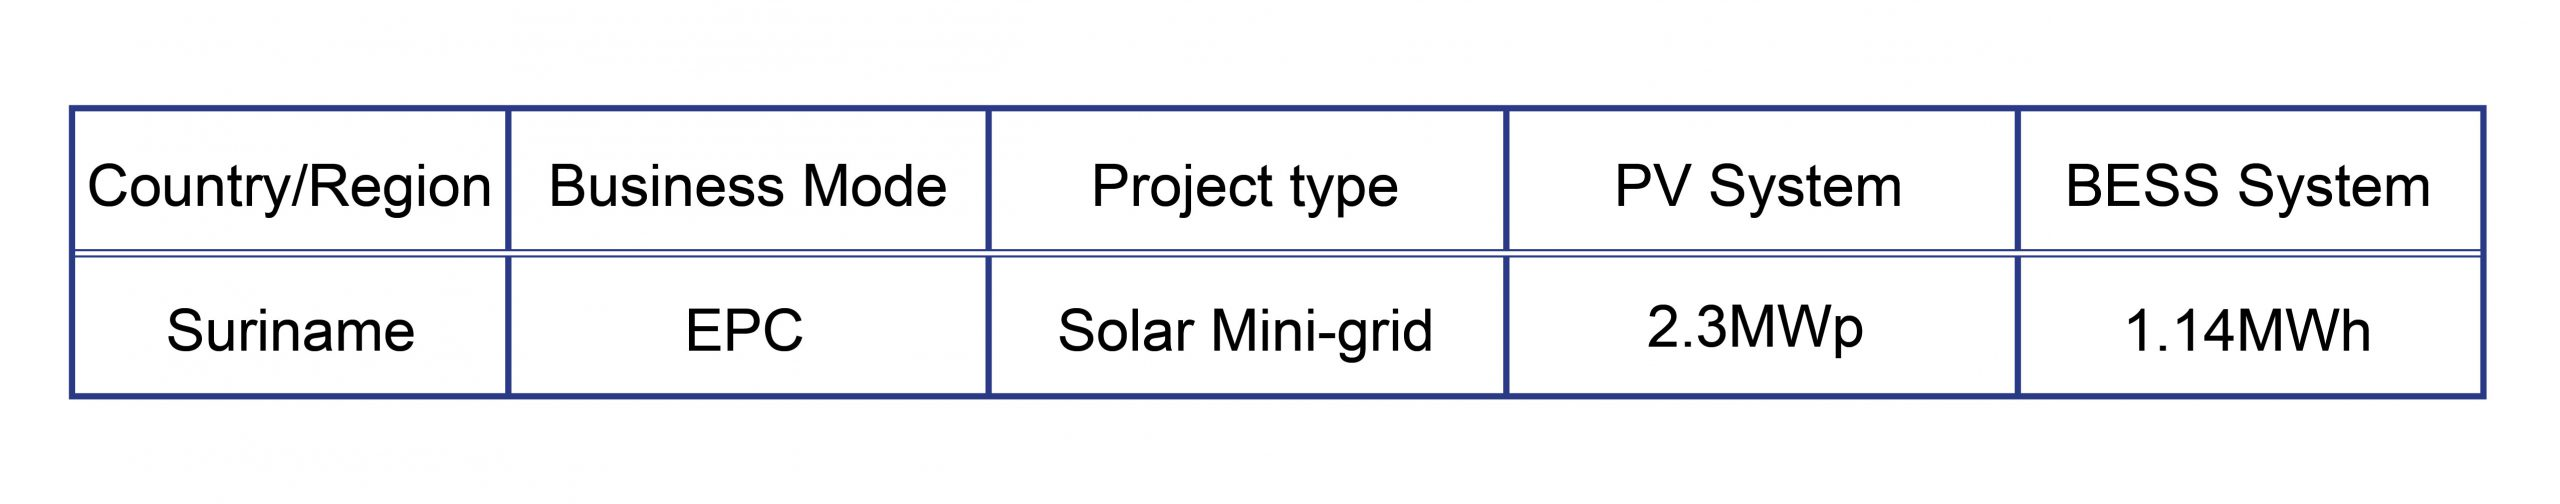 CASES-Solar Hybrid System Project in Suriname插图